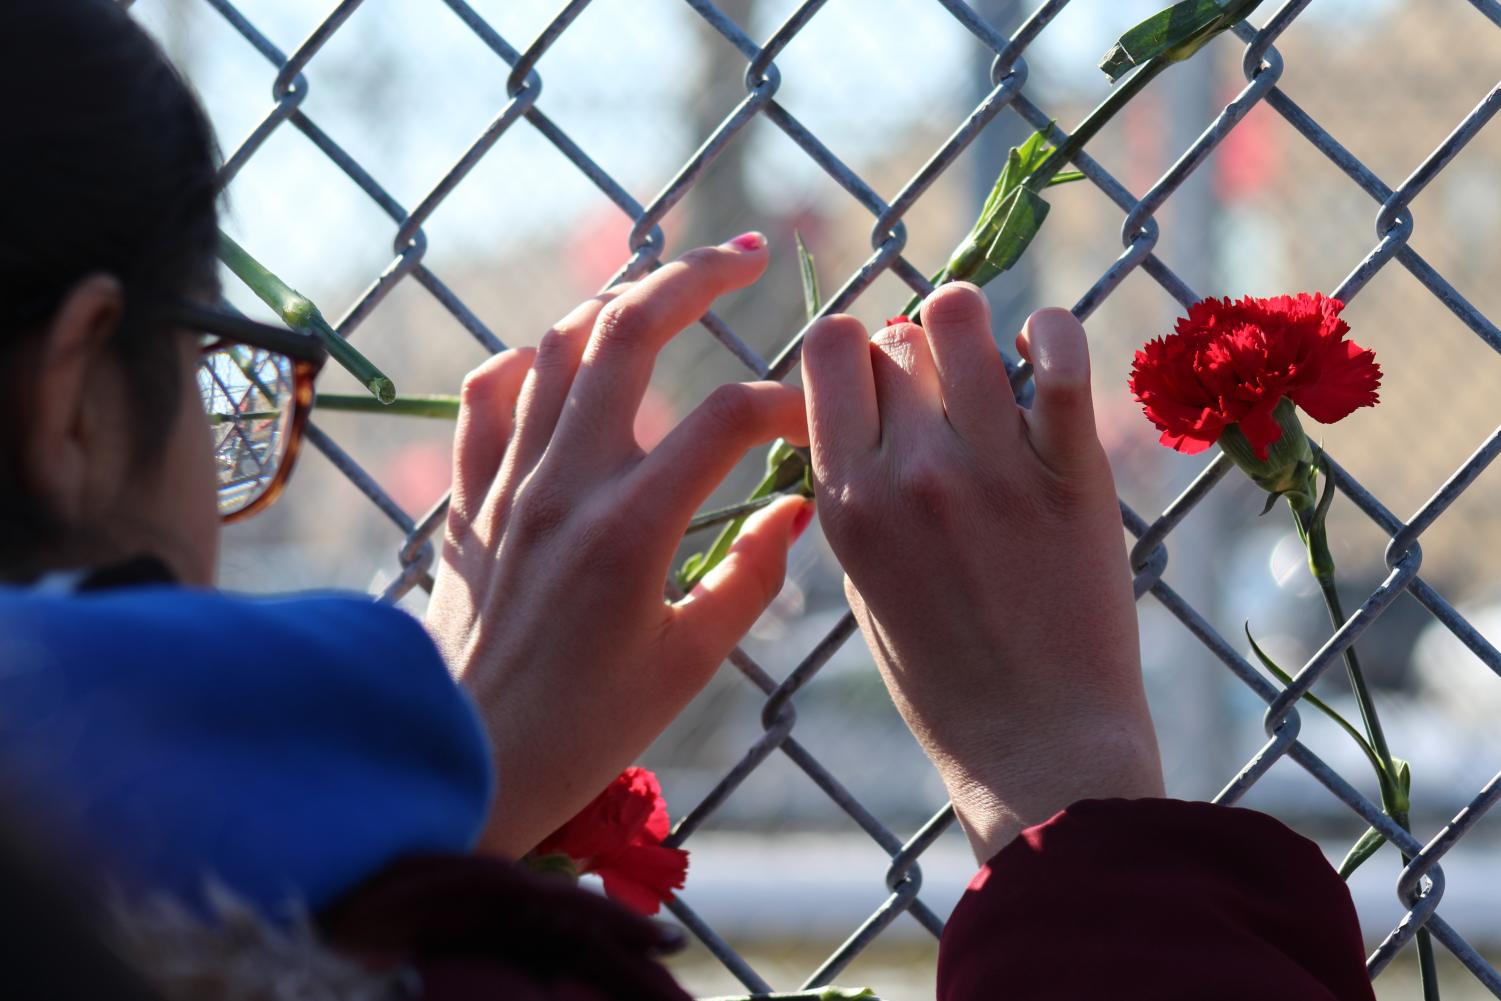 A+student+shows+her+respect+for+the+Parkland+victims+by+leaving+her+flower+on+the+gate